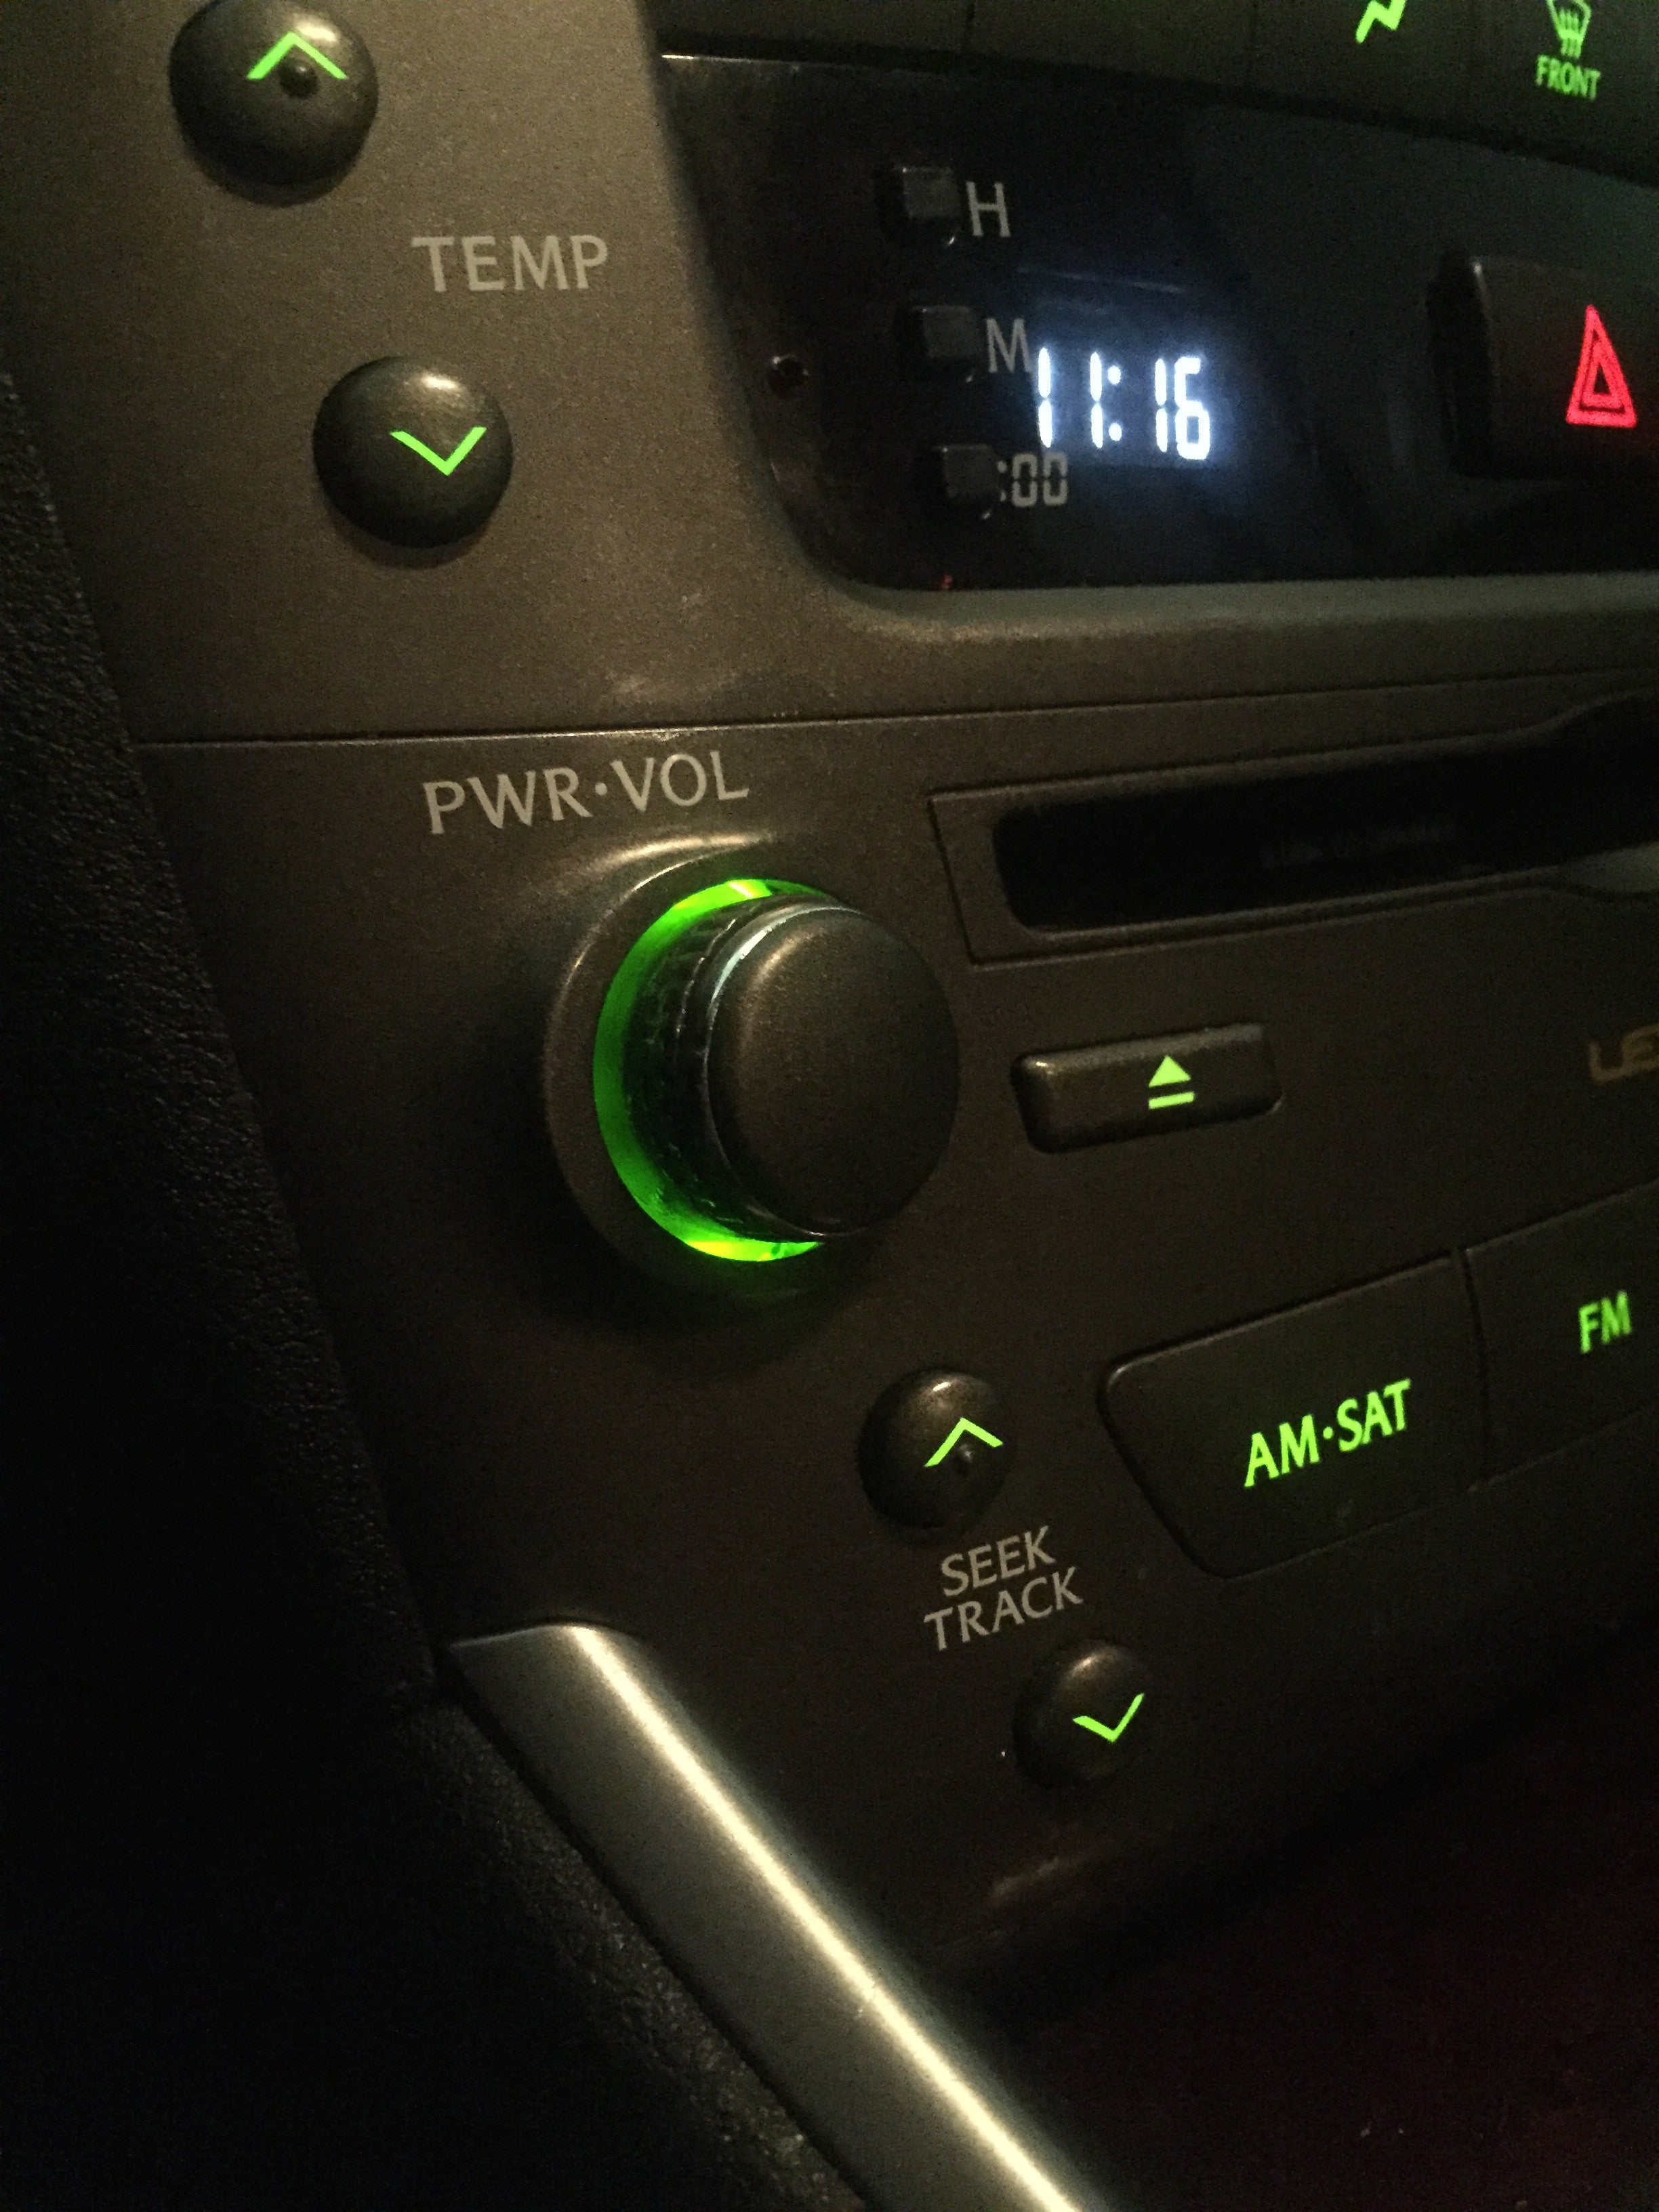 New CHROME BUTTON TIP for LEXUS IS250 IS350 iSF NAVIGATION